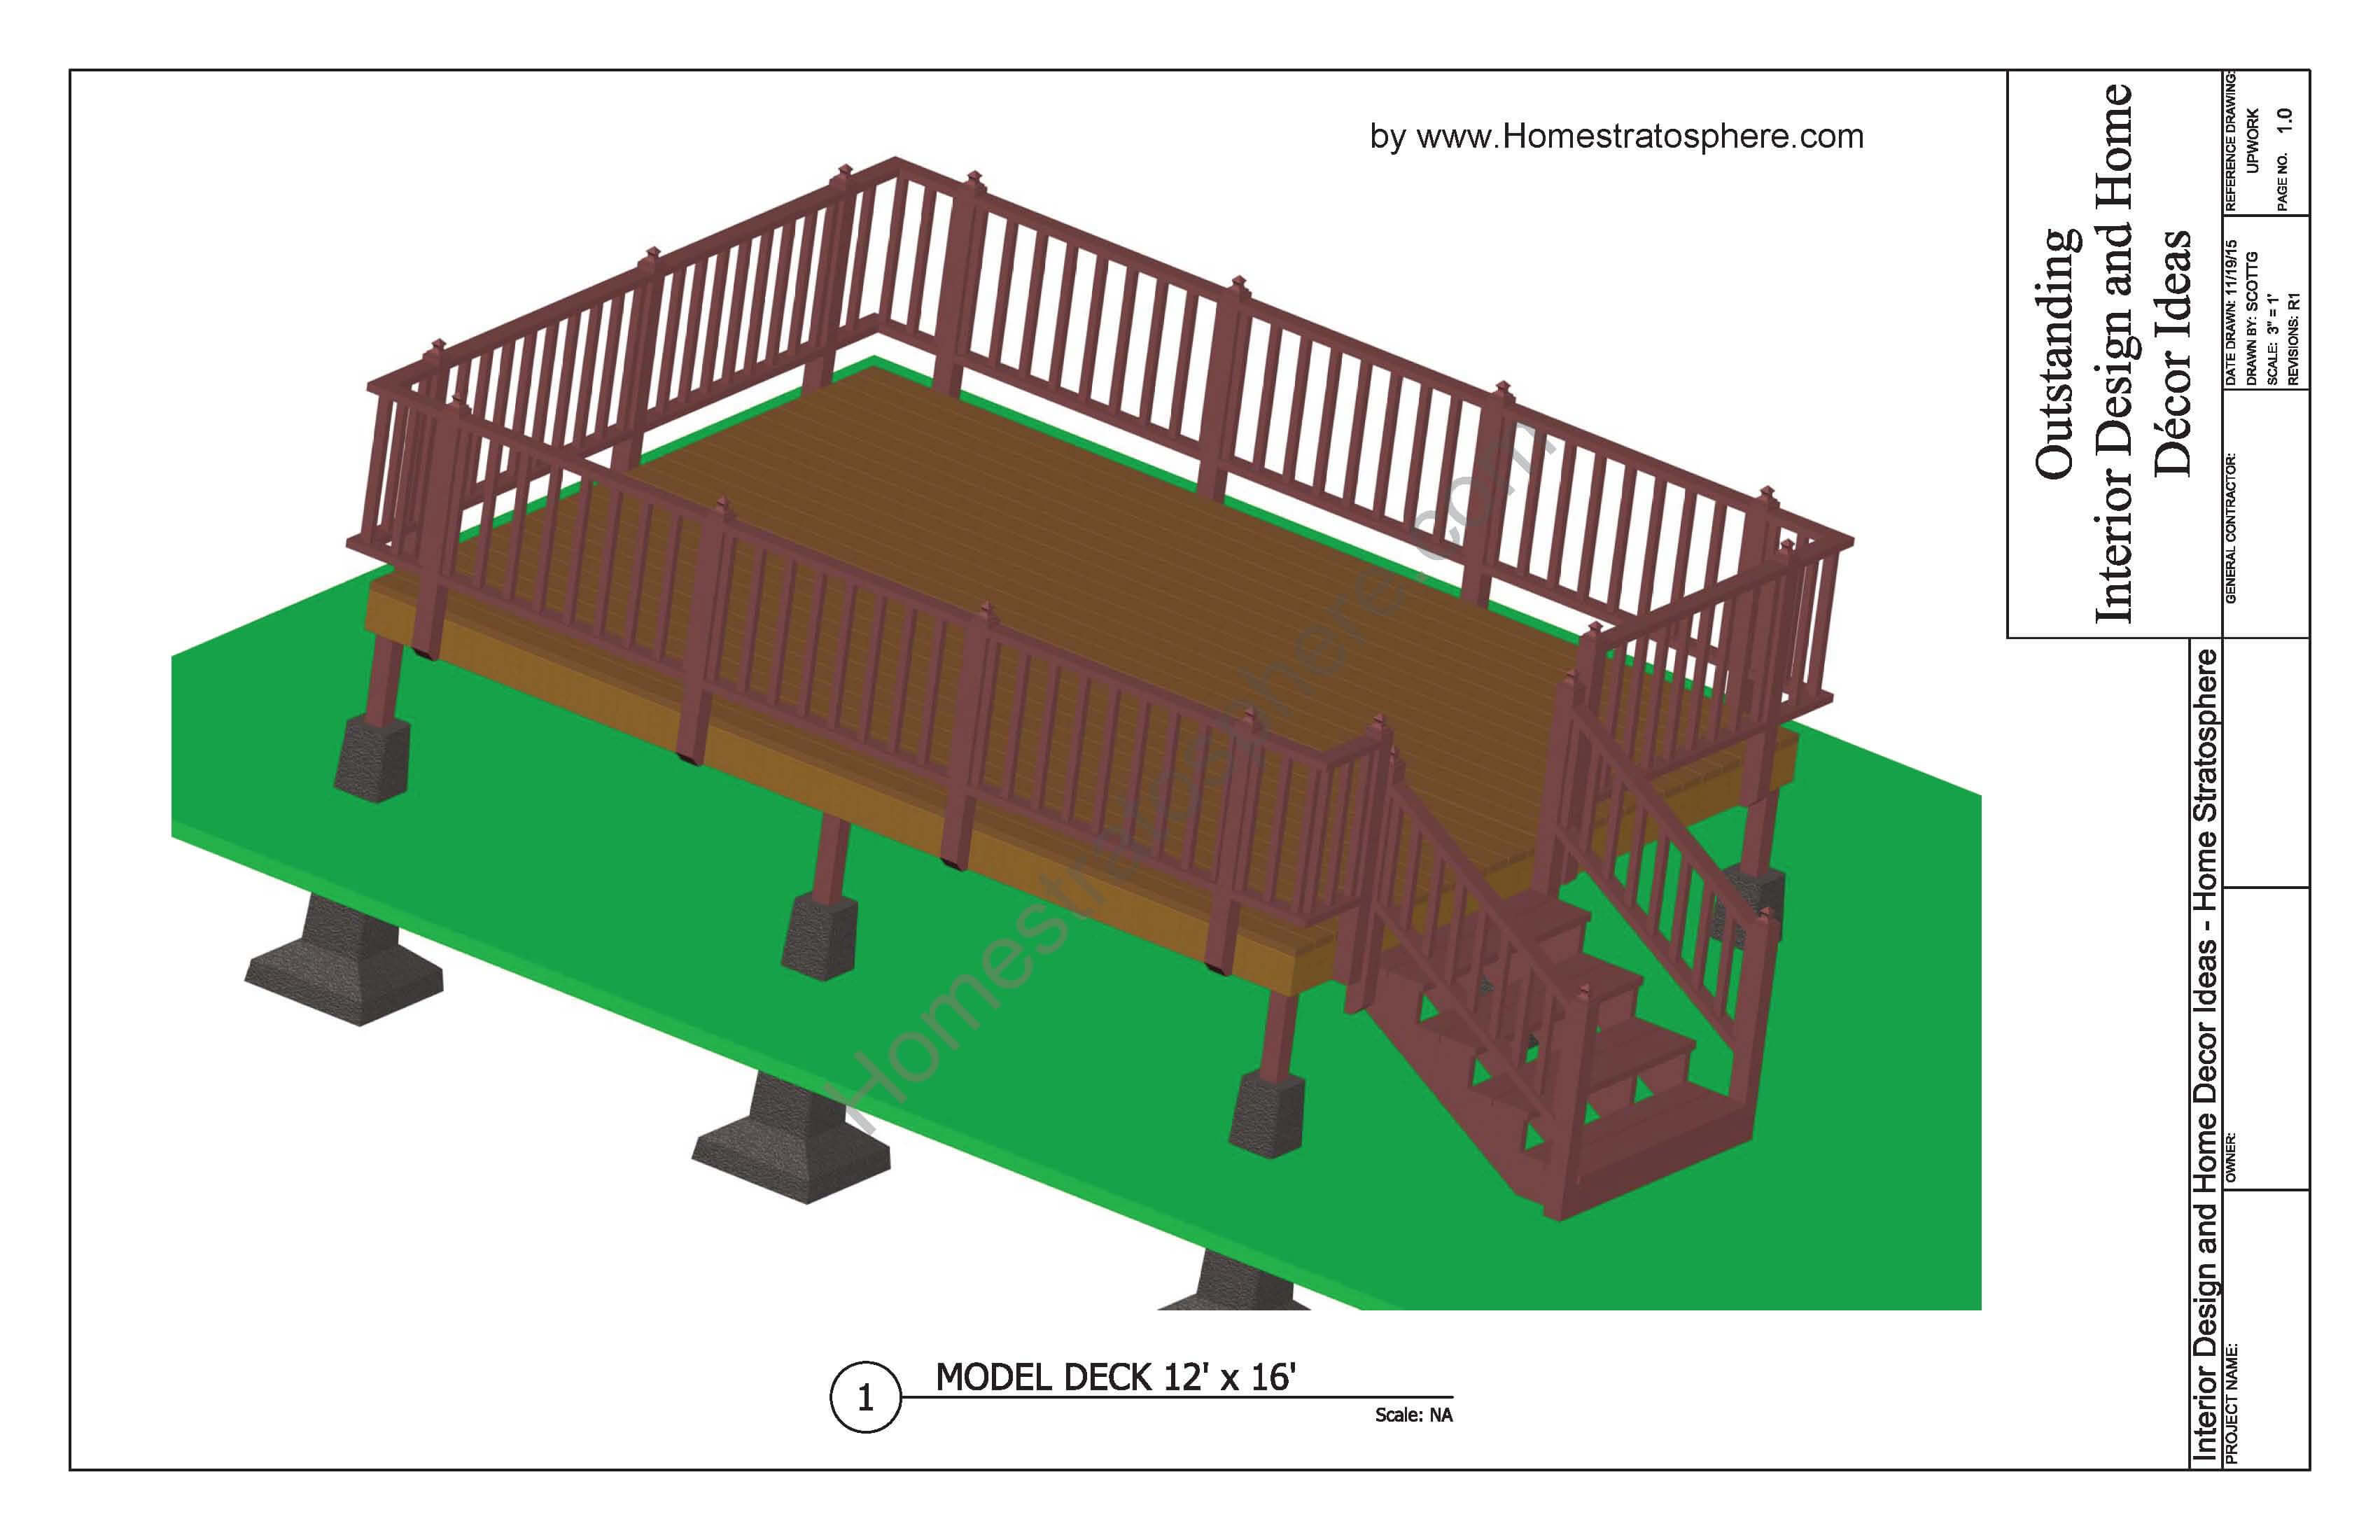 Free deck plans and blueprints online with pdf downloads for Ground level deck plans pdf